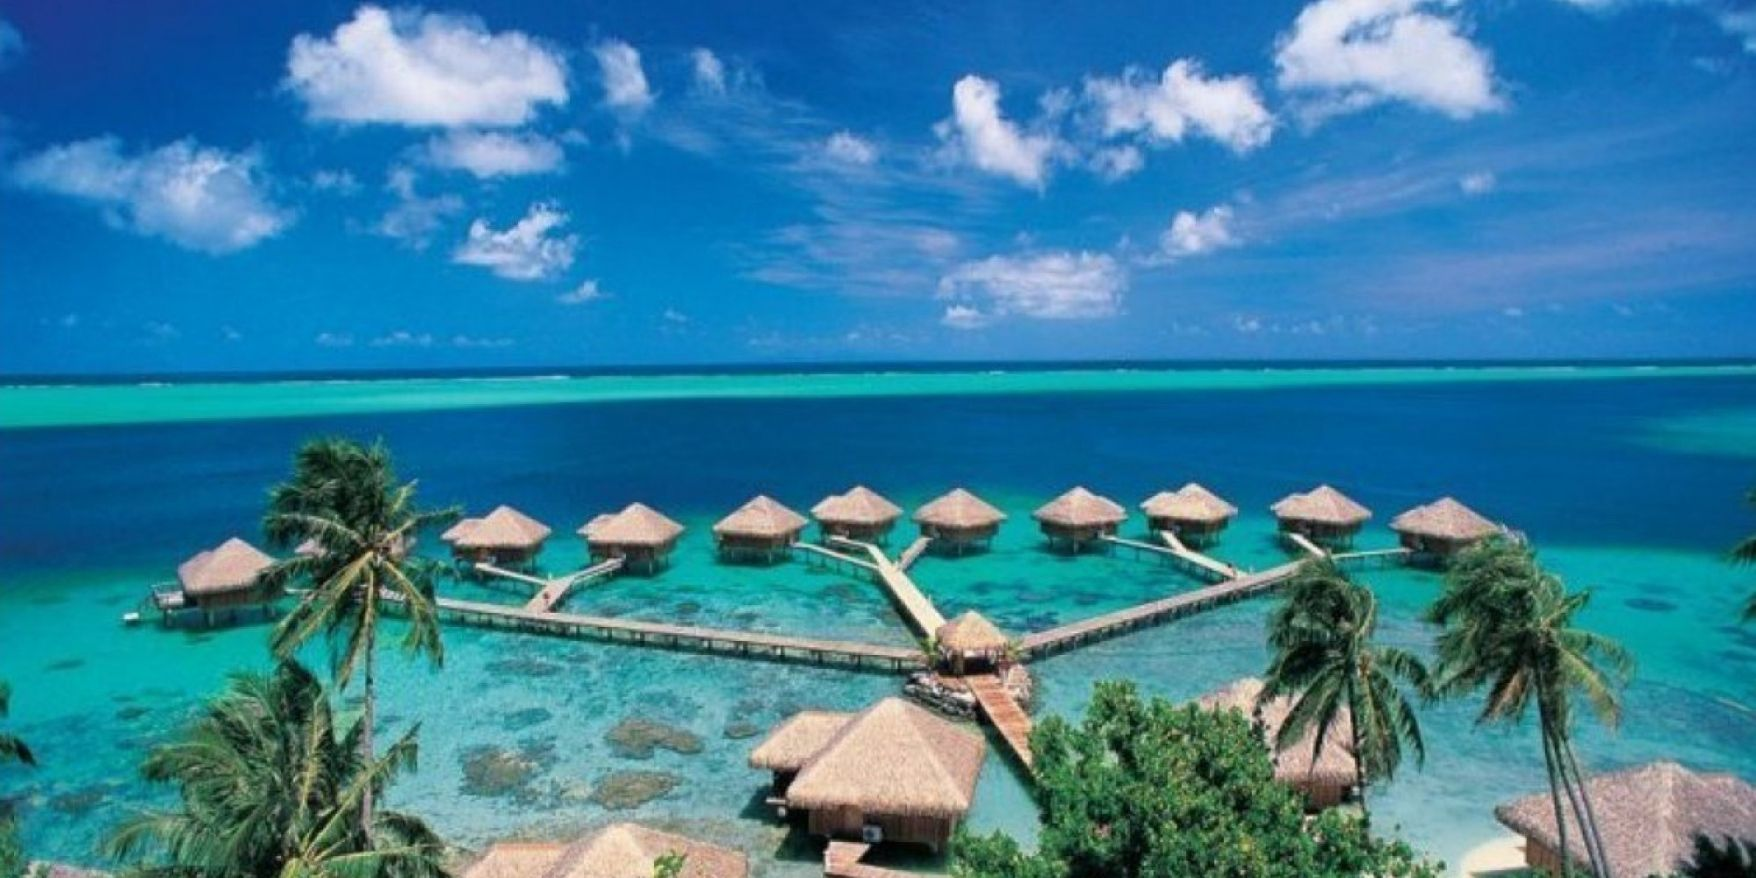 Beautiful Hawaii Overwater Bungalow Als Check More At Http Www Jnnsysy